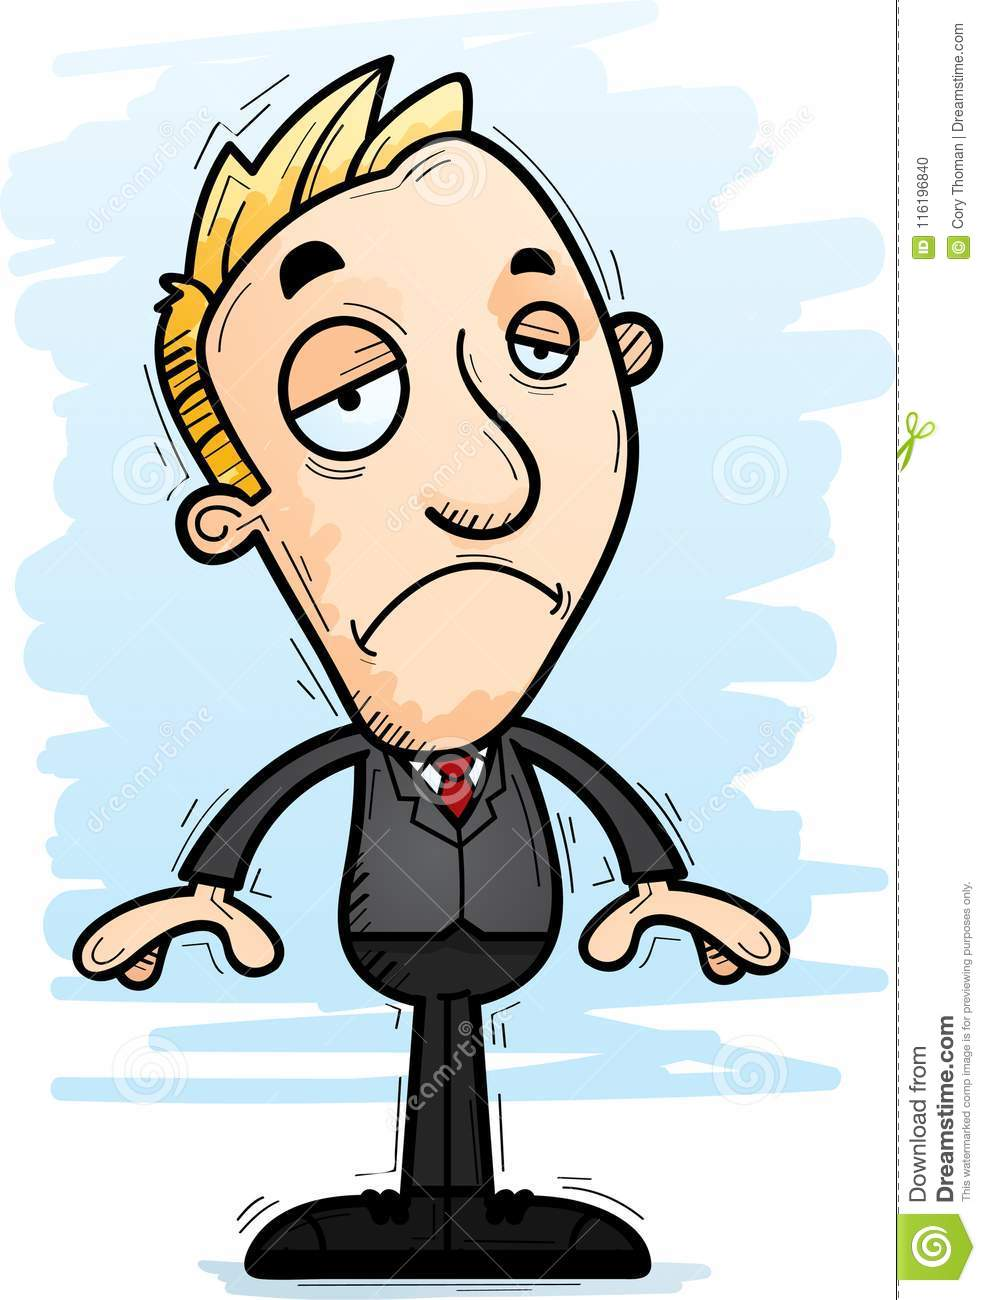 A cartoon illustration of a businessman looking sad